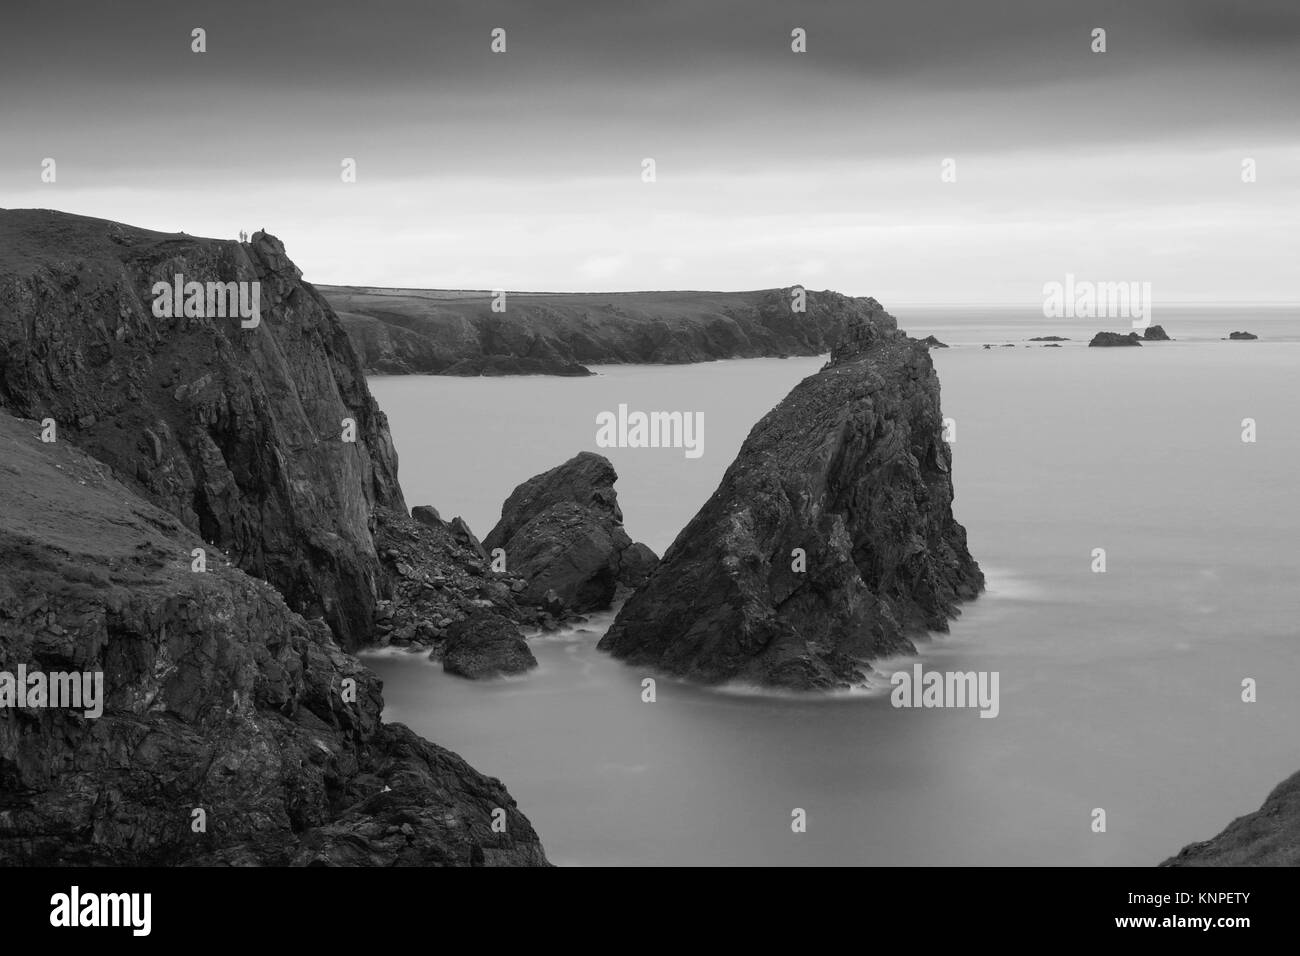 Black and White long exposure taken at Kynance Cove. - Stock Image